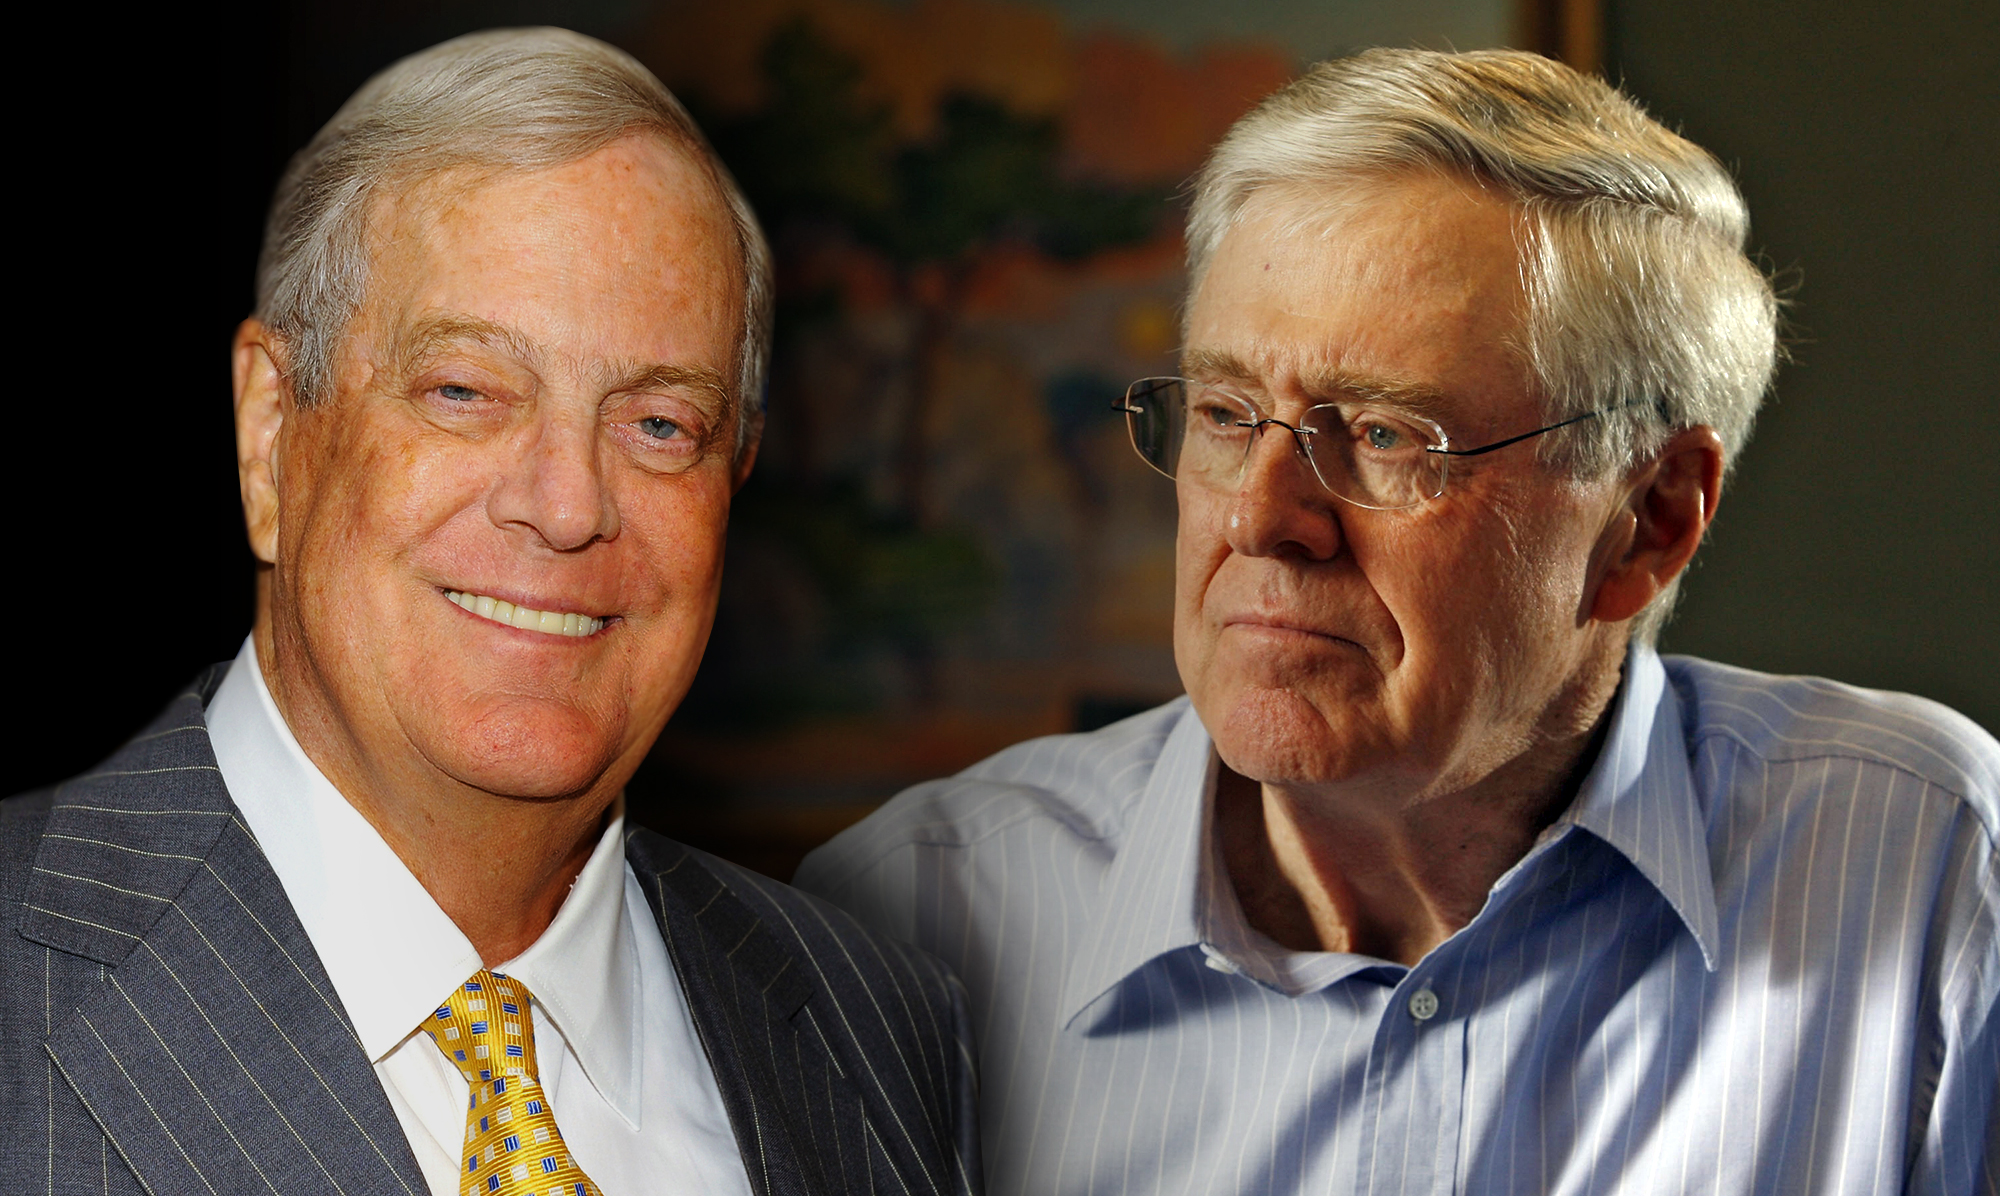 Top 25 Things I Would Do with the $900 Million Koch Bros Plan to Spend on 2016 Presidential Election